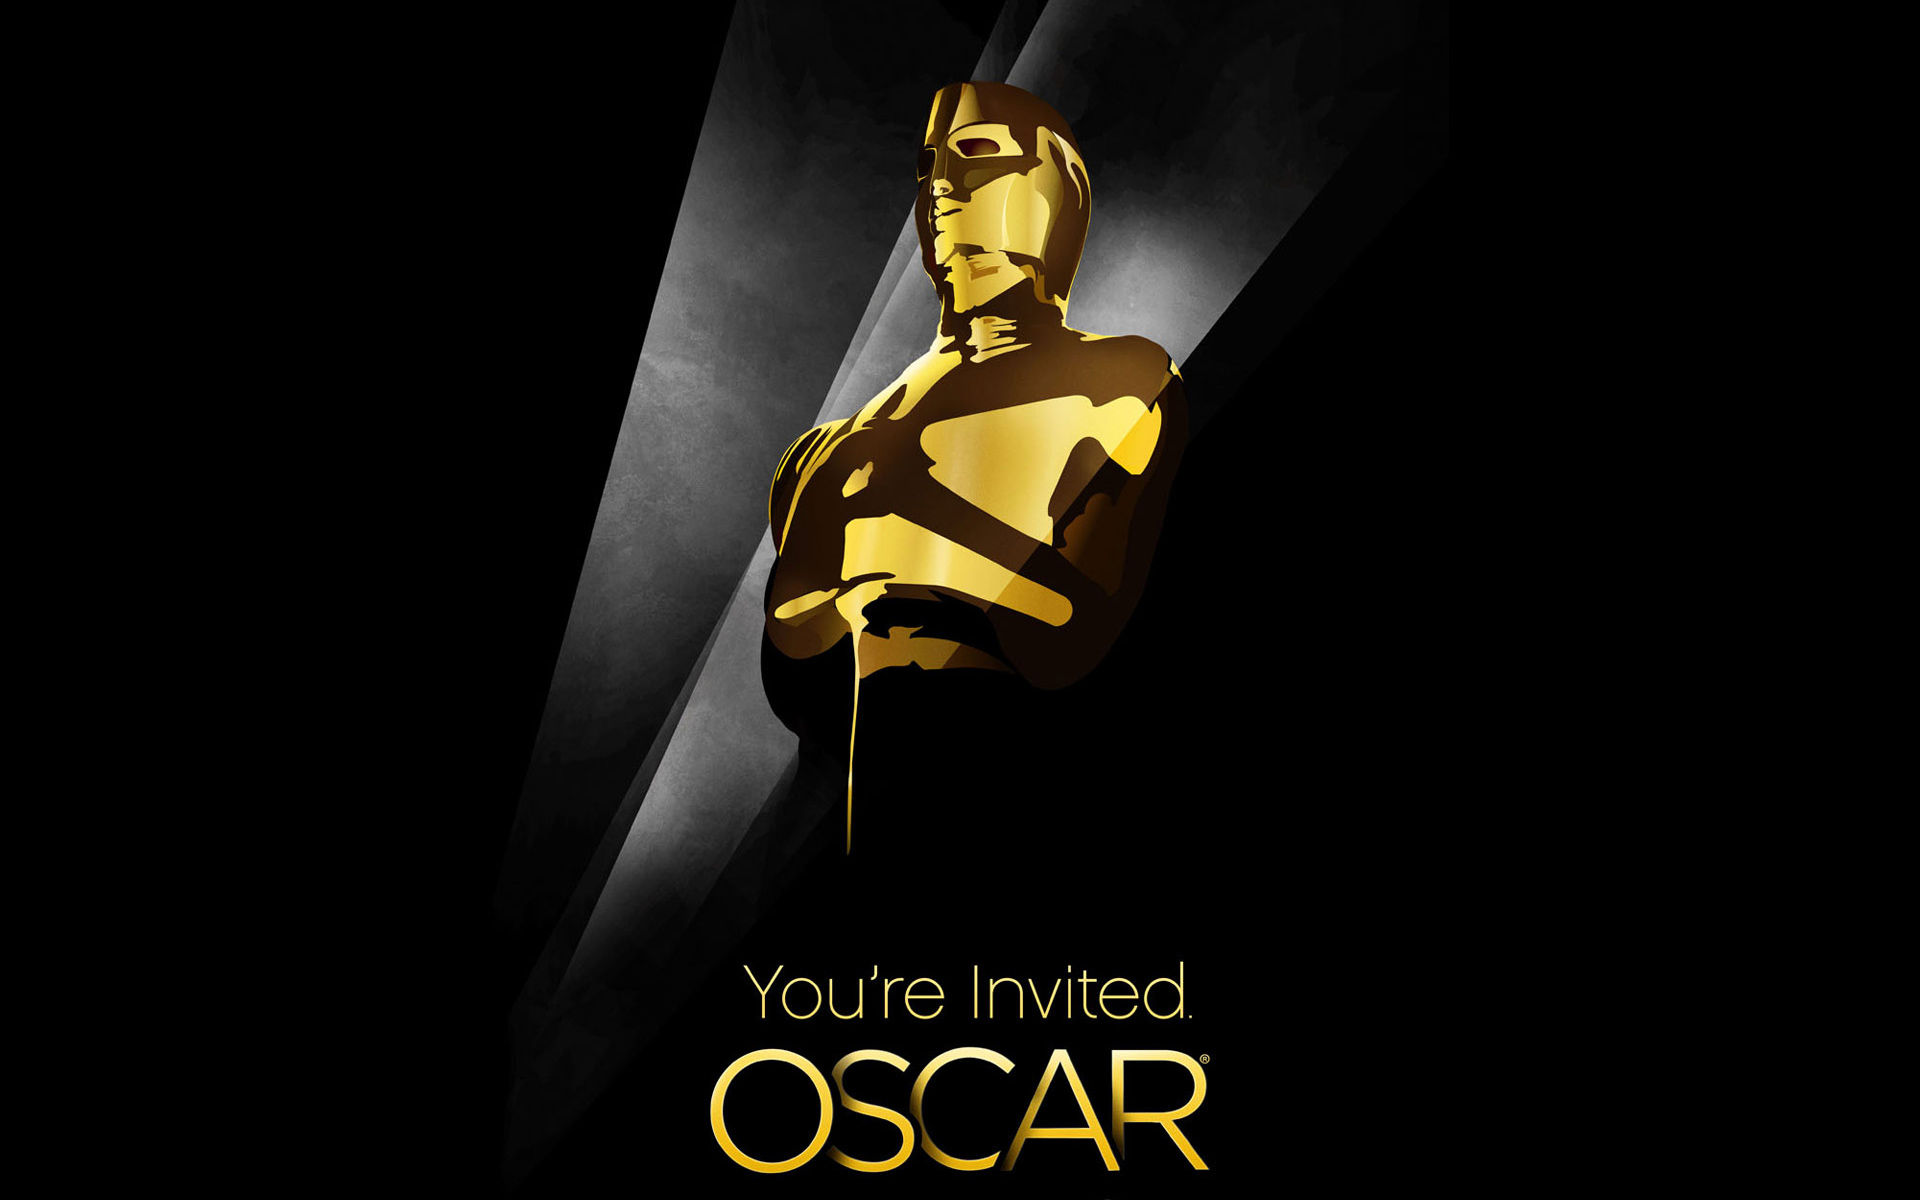 oscar_invitation-wide